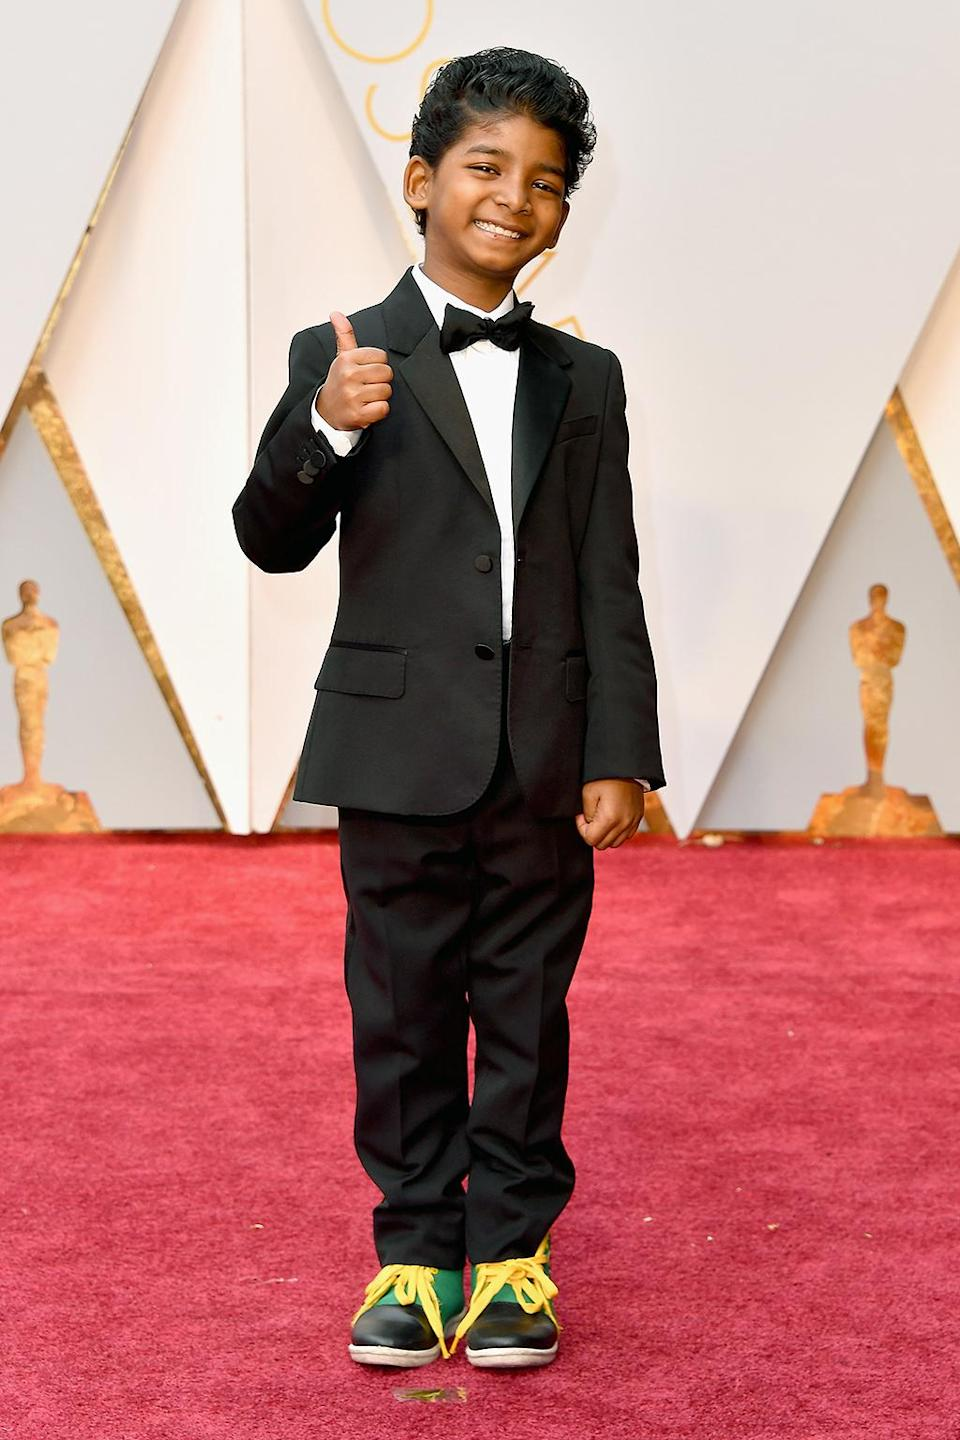 <p>Actor Sunny Pawar attends the 89th Annual Academy Awards at Hollywood & Highland Center on February 26, 2017 in Hollywood, California. (Photo by Steve Granitz/WireImage) </p>